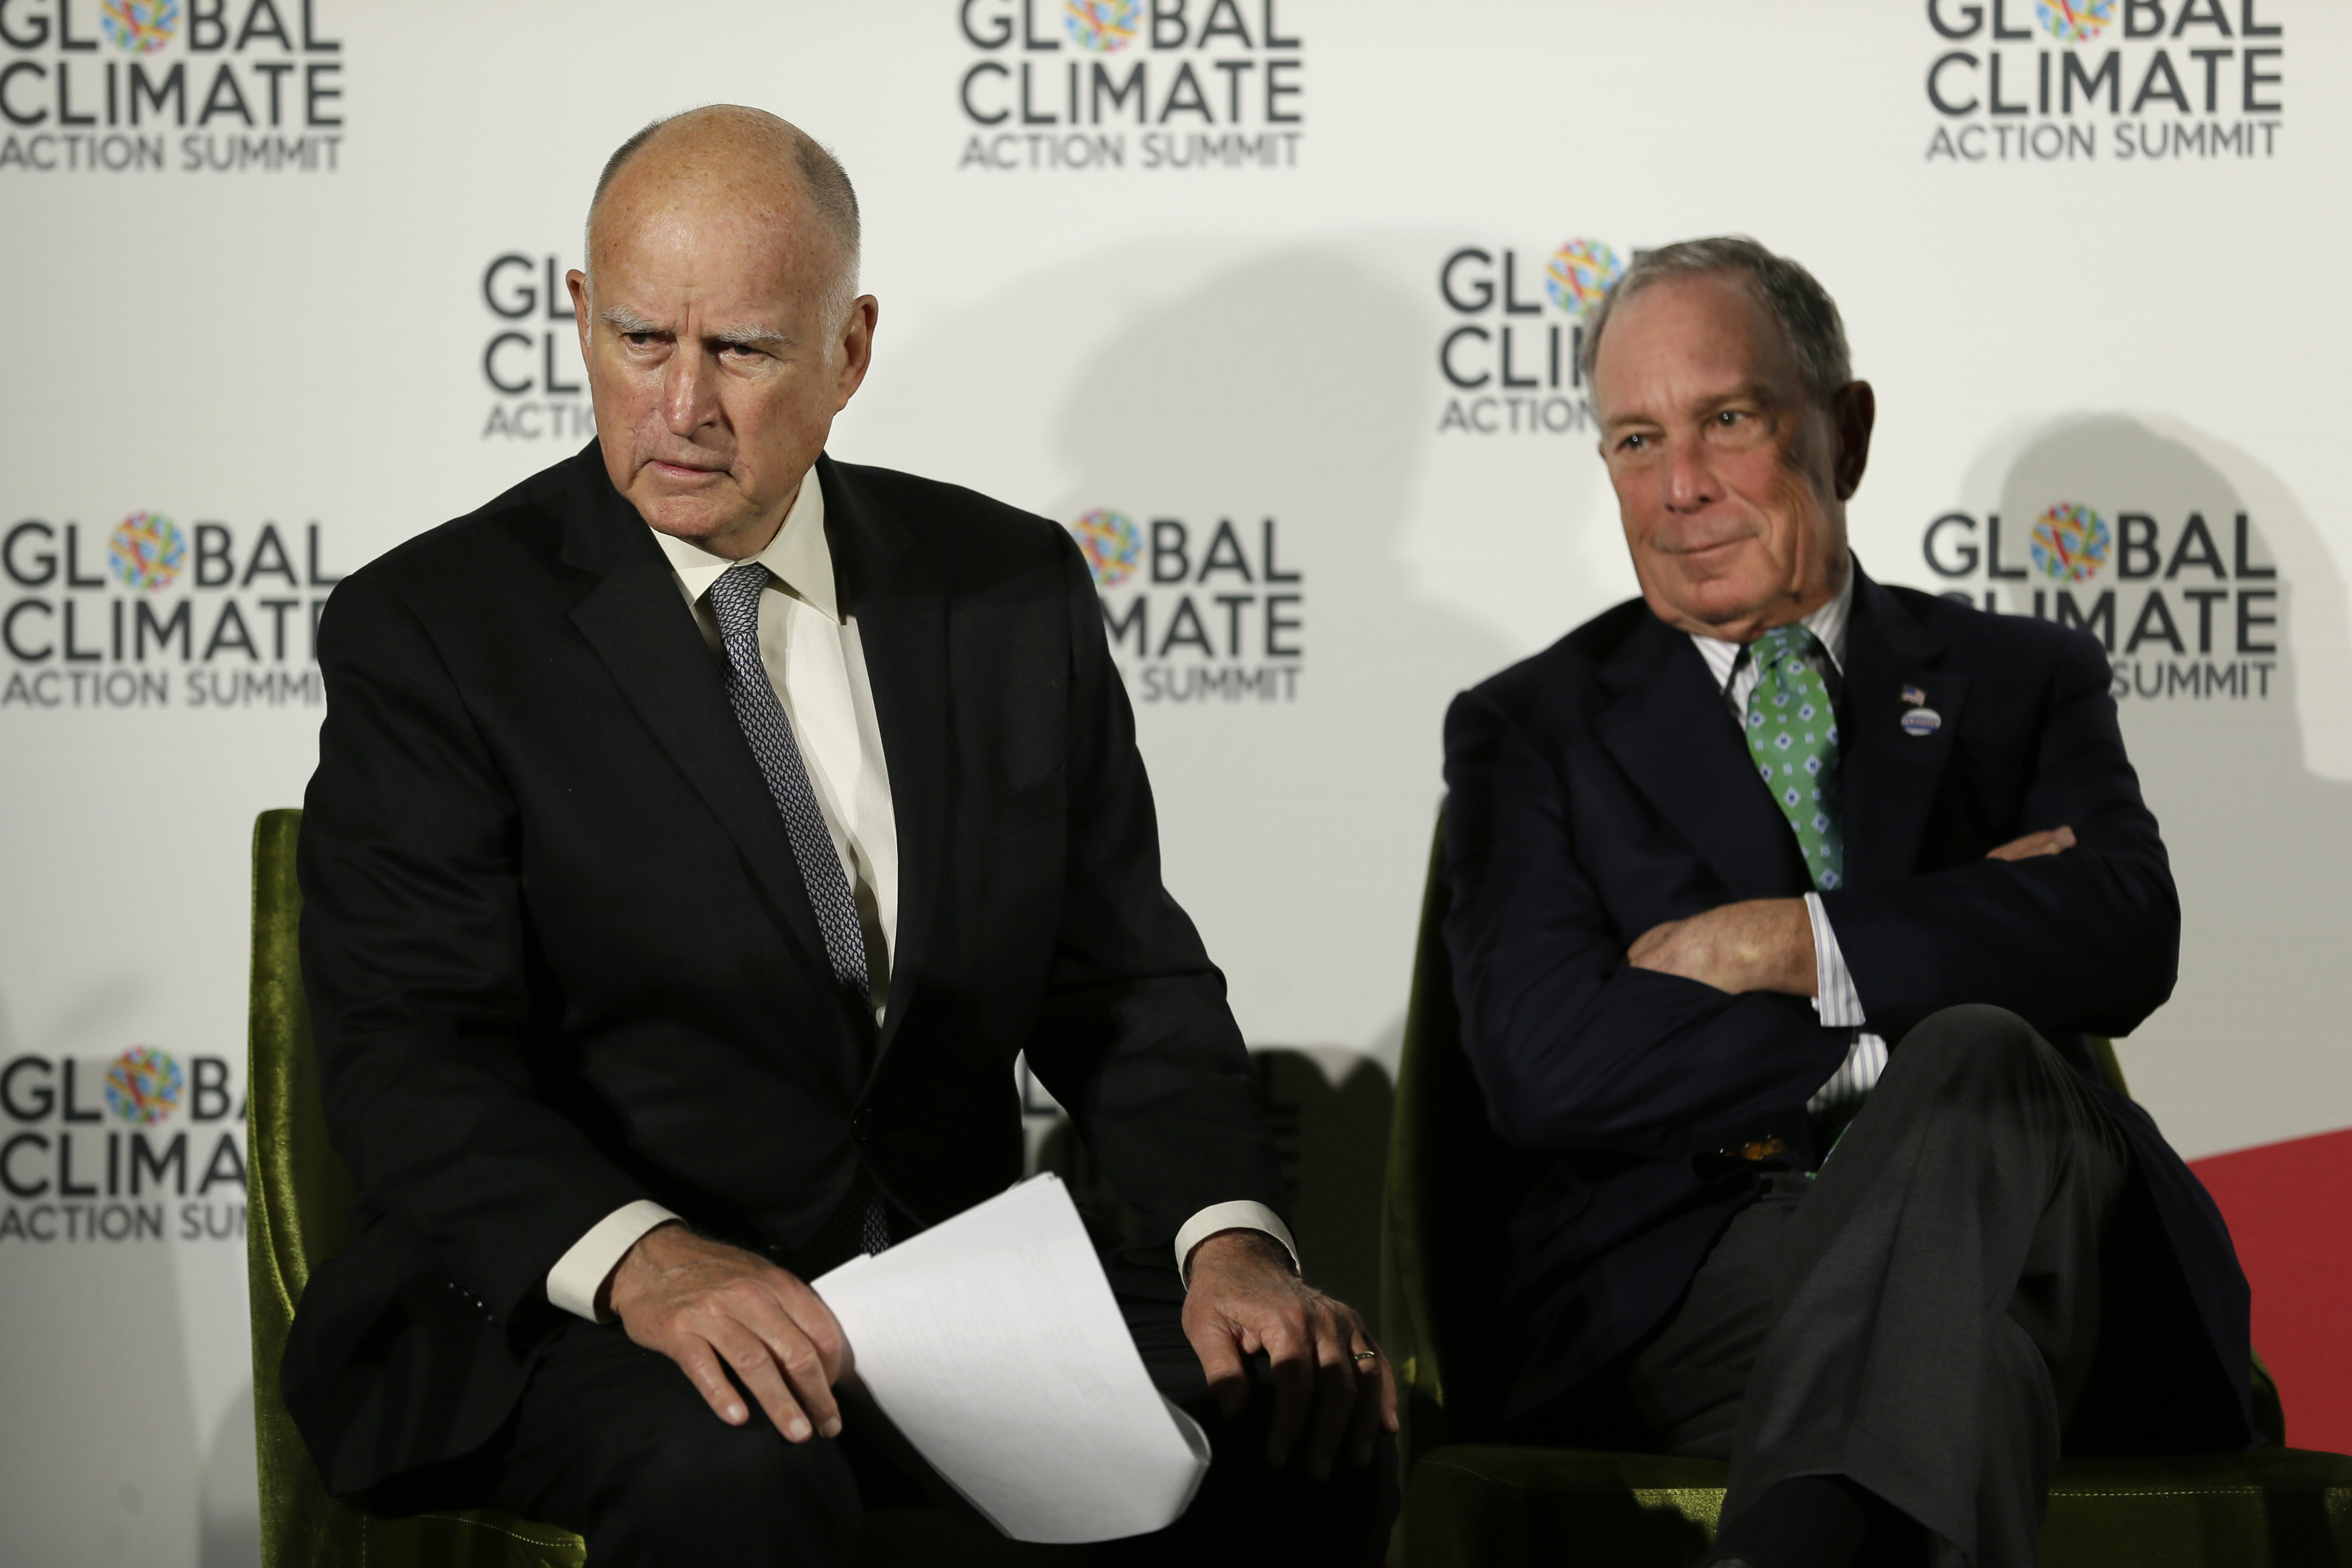 California Gov. Jerry Brown, left, and Michael Bloomberg listen to questions during a news conference at the Global Action Climate Summit Thursday, Sept. 13, 2018, in San Francisco. Gov. Brown started his global climate summit by saying that President Donald Trump will likely be remembered as a liar and fool when it comes to the environment. The Democratic Brown and former New York City Mayor Michael Bloomberg held a press conference Thursday on the first full day of the summit that is partly a rebuke of the Trump administration. (AP Photo/Eric Risberg)